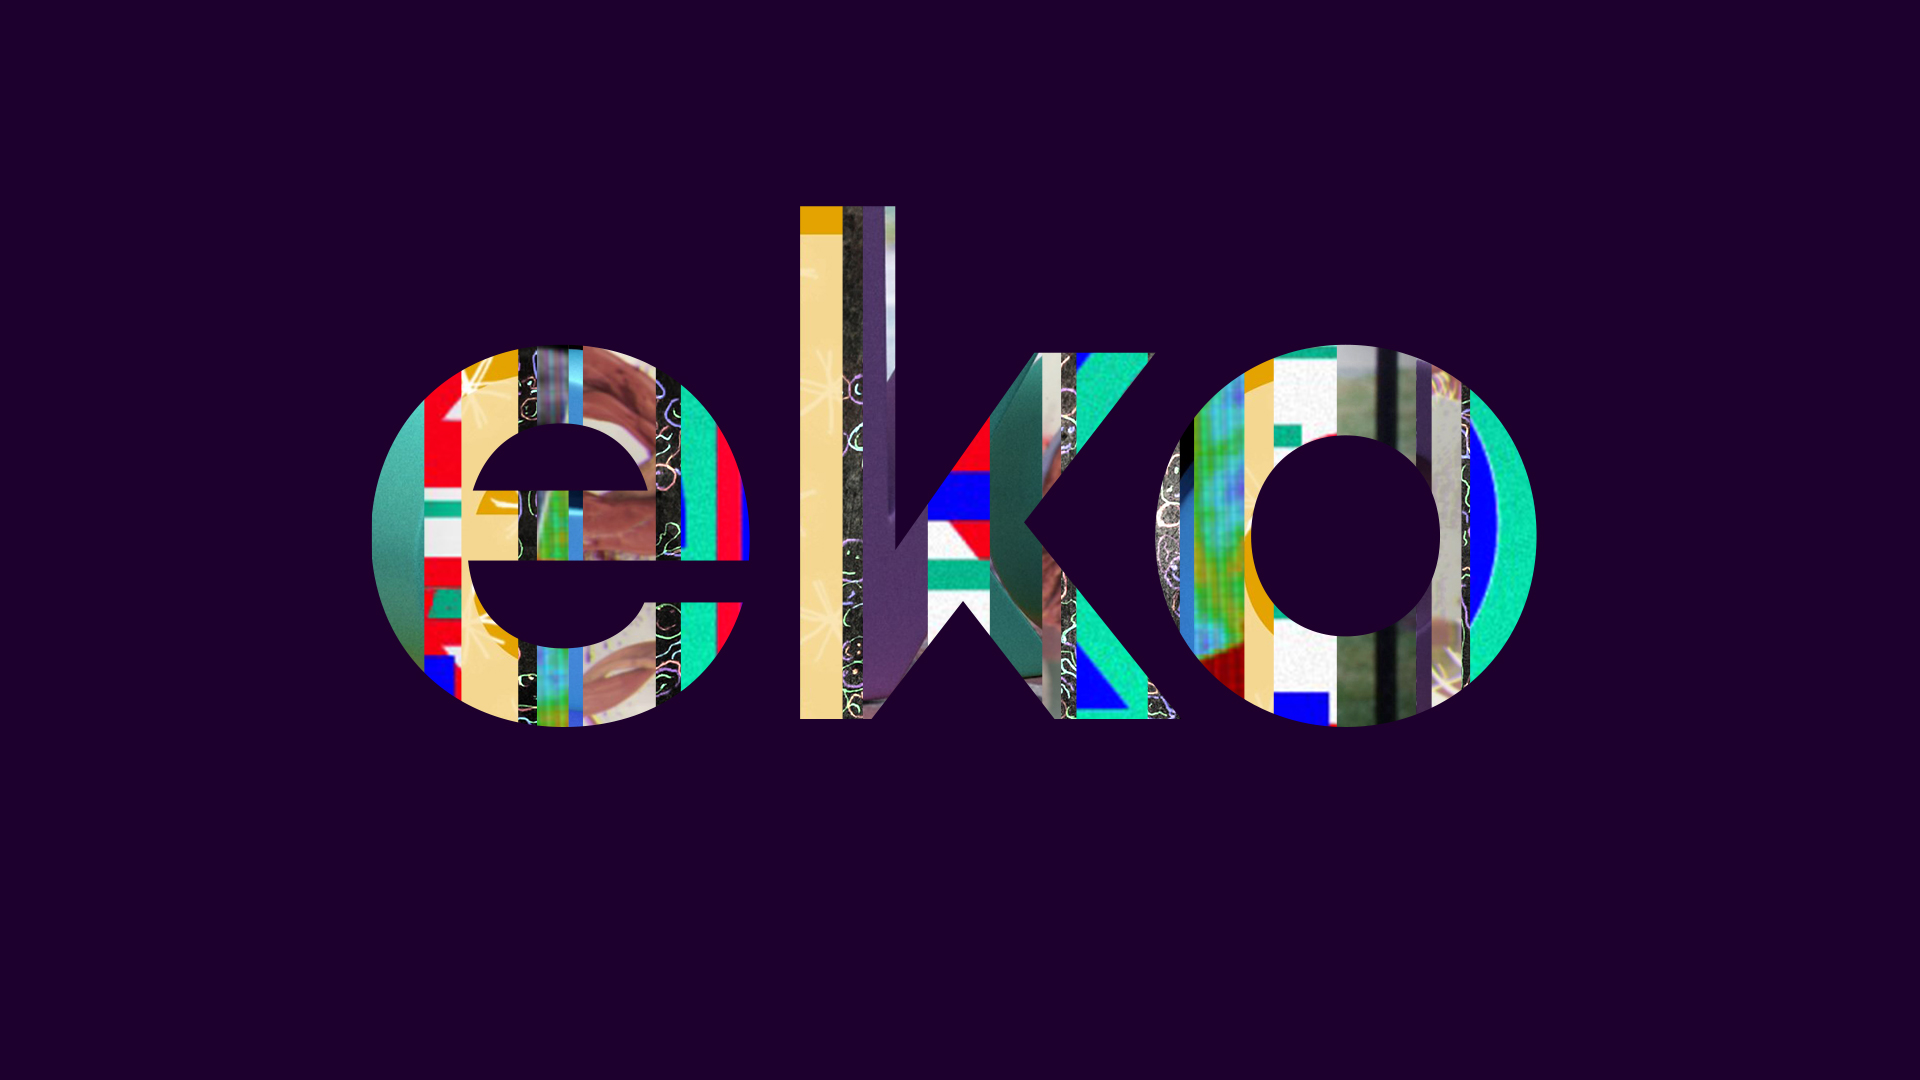 With eko, the Future of Entertainment is Interactive and Inclusive